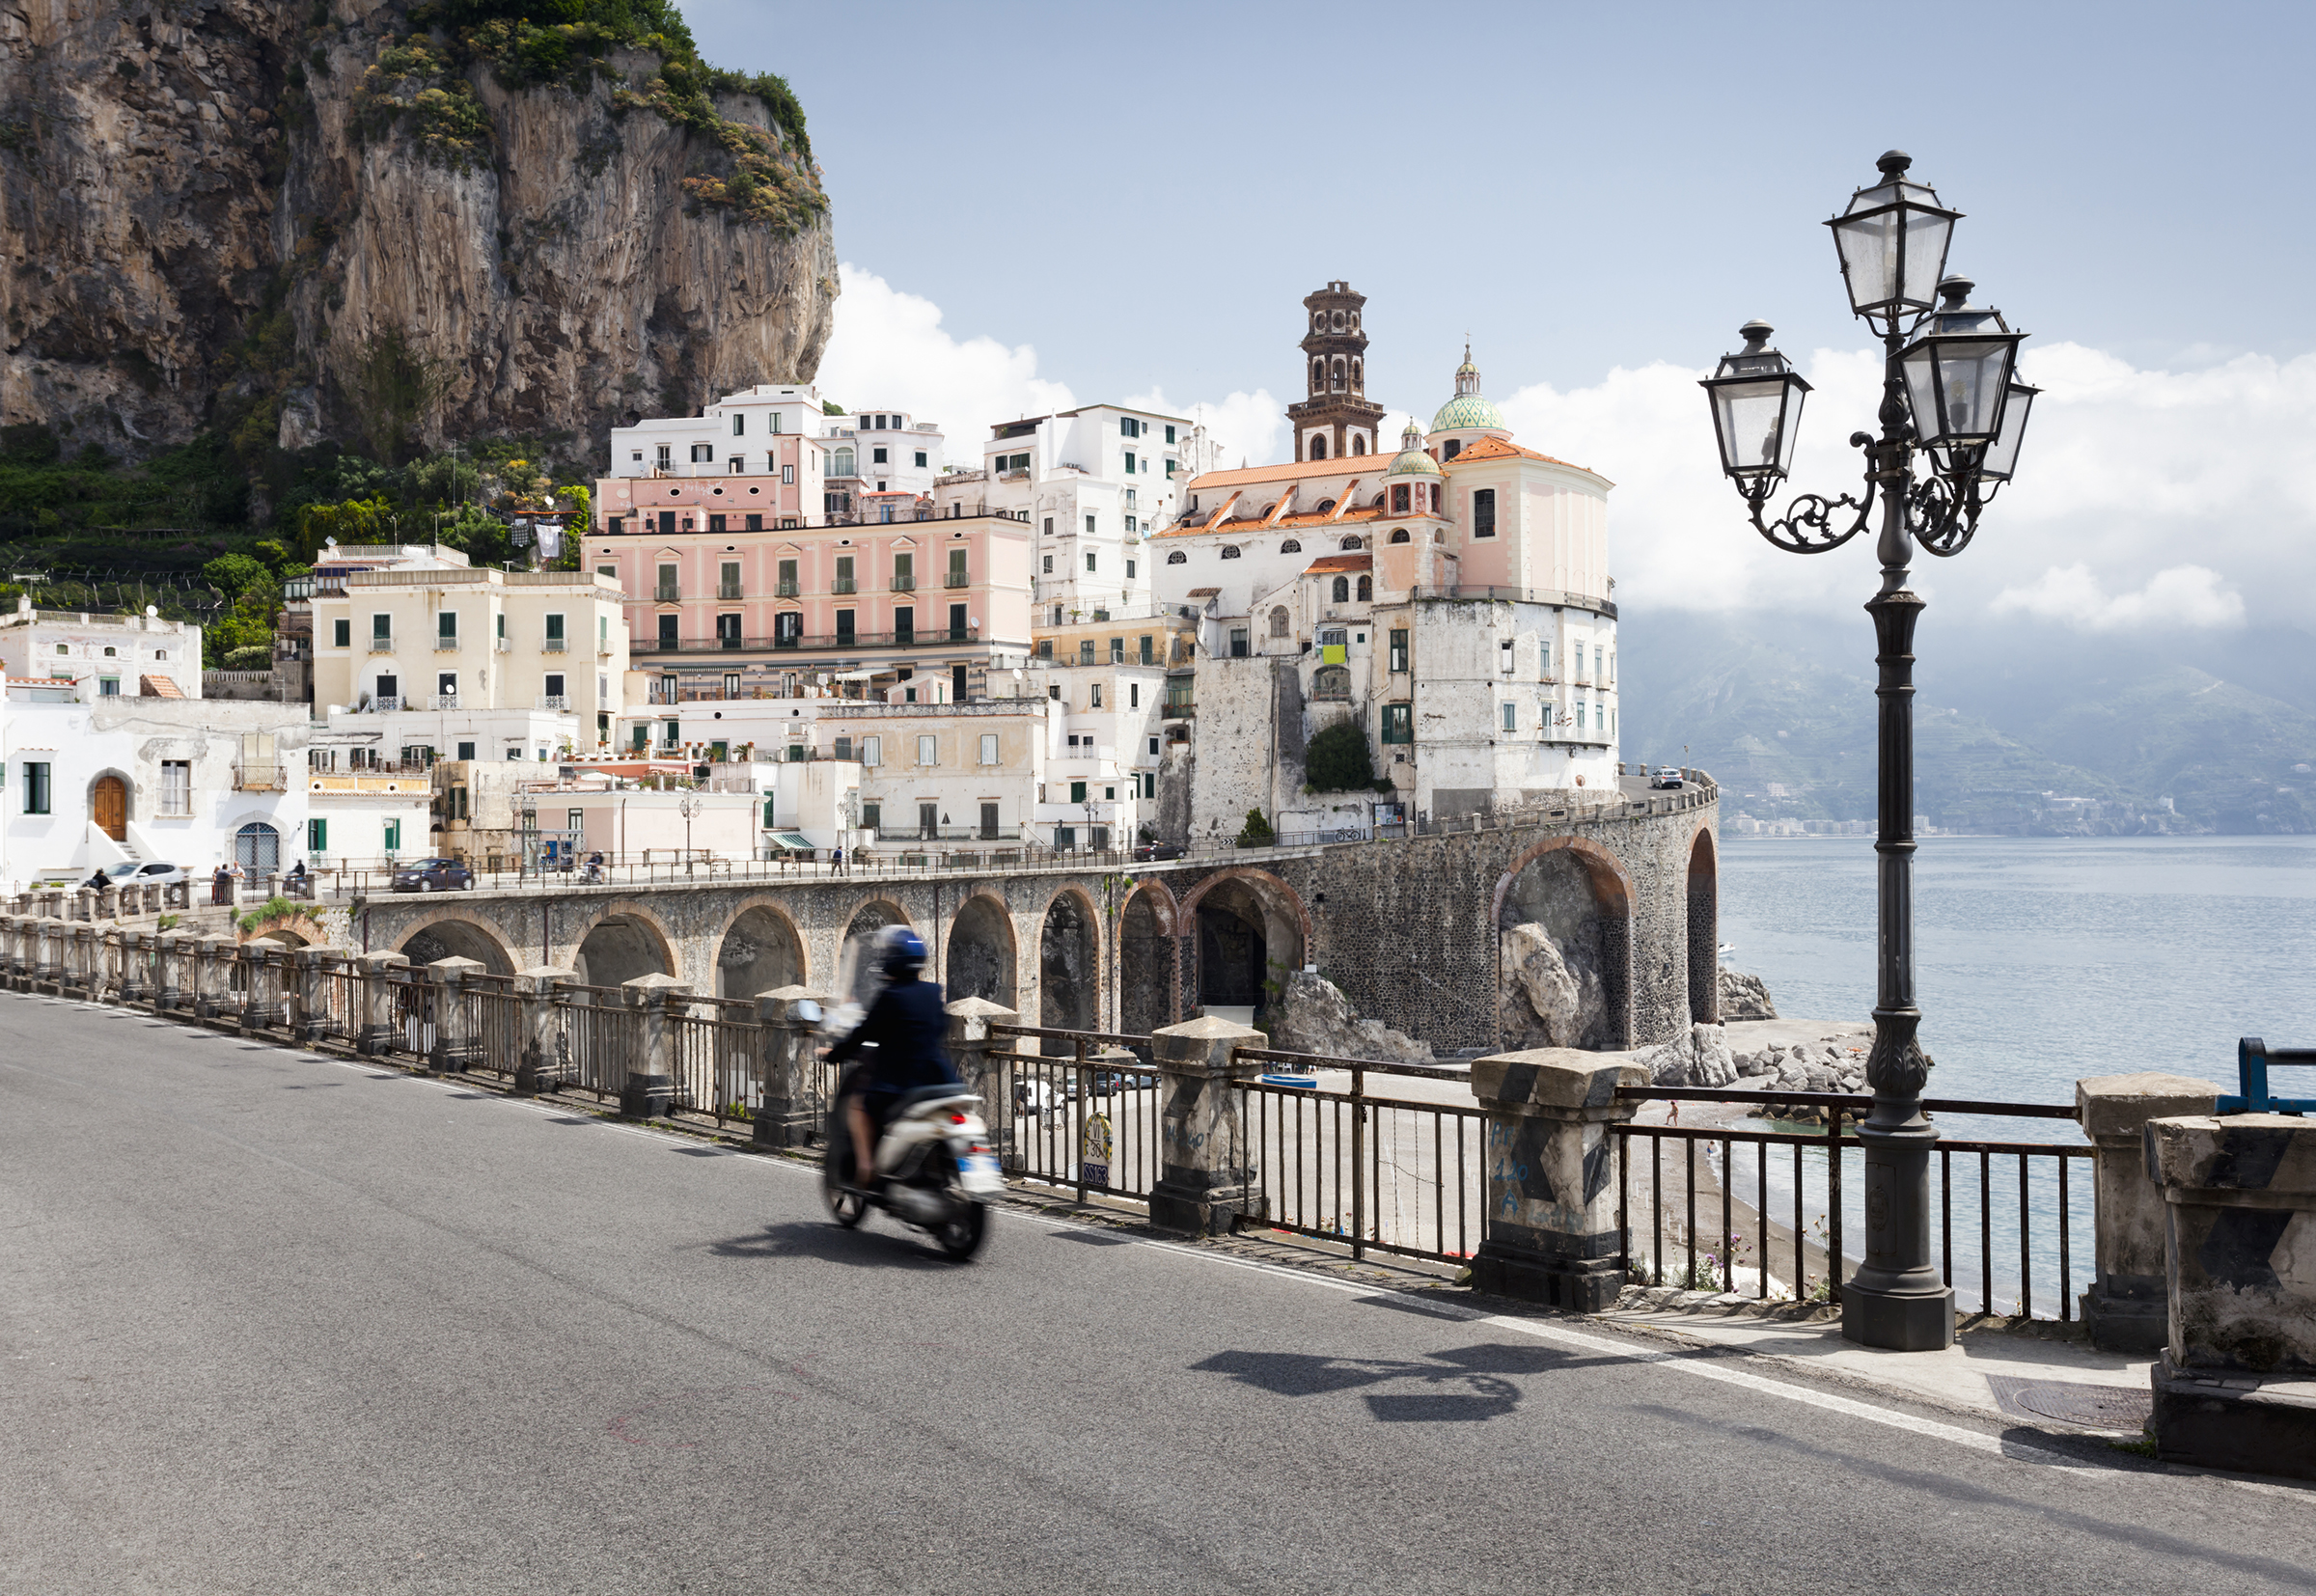 The Amalfi Coast Naples to Positano